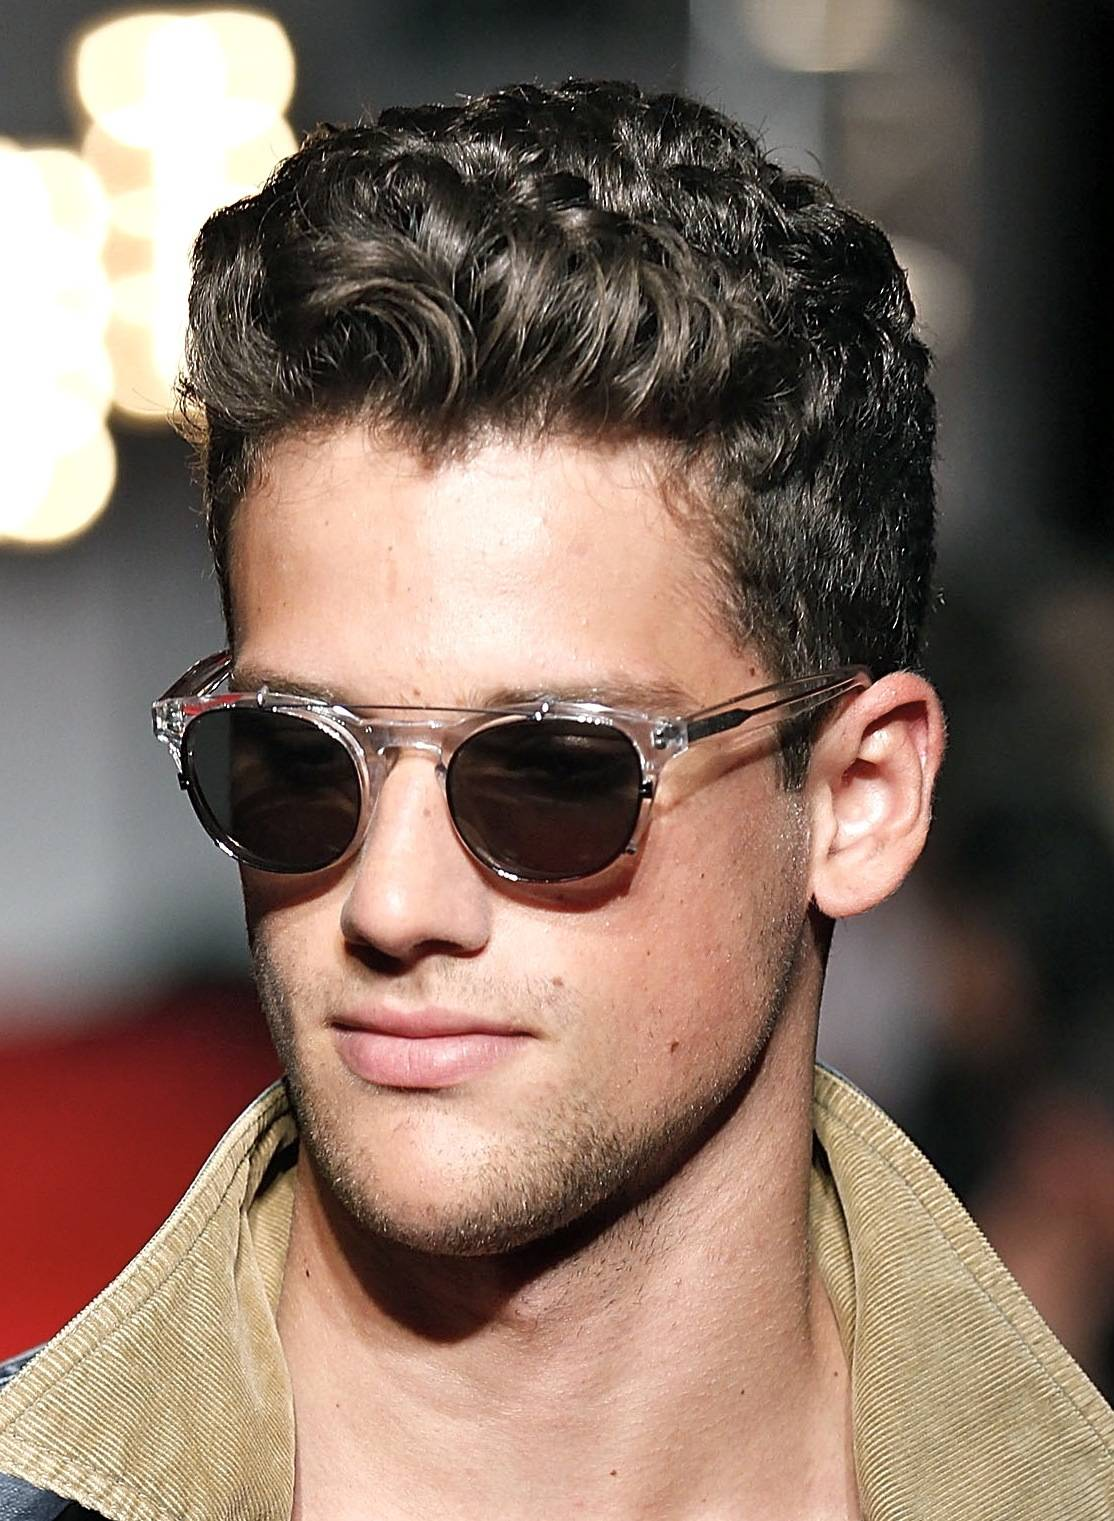 Top 25 Men's Hair Styles, Haircut, Trends 2012